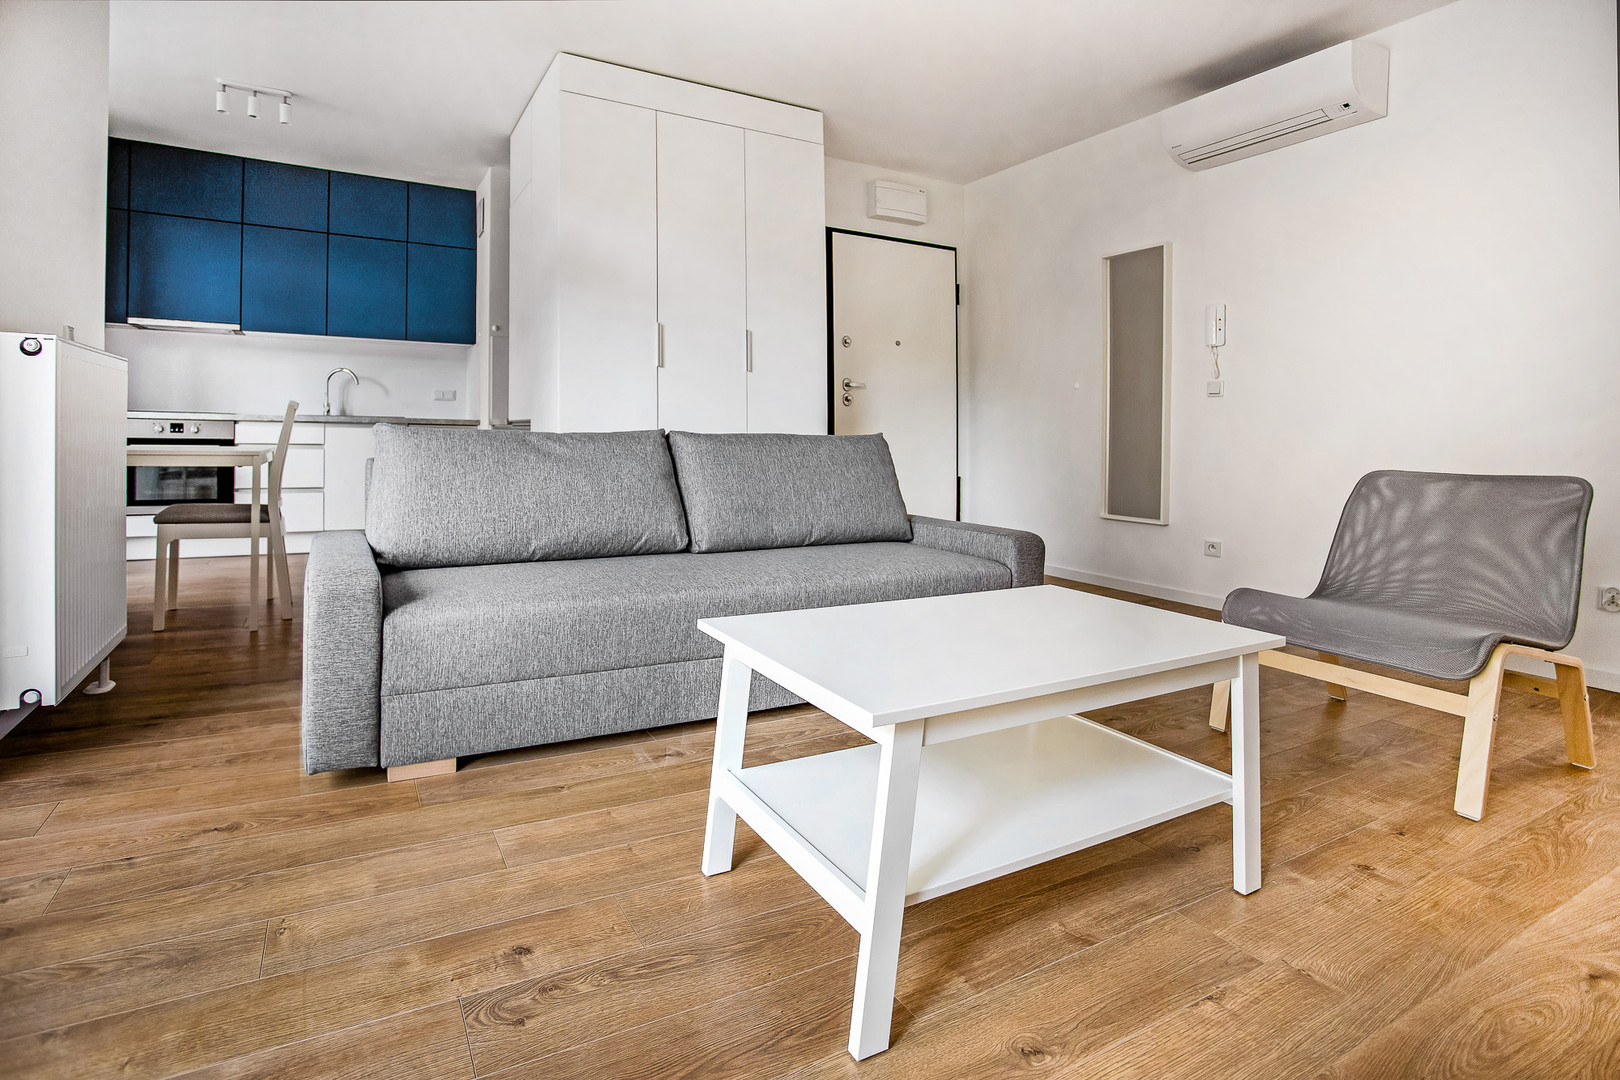 Wrasaw-Wola-Office-Apartments_2.jpg